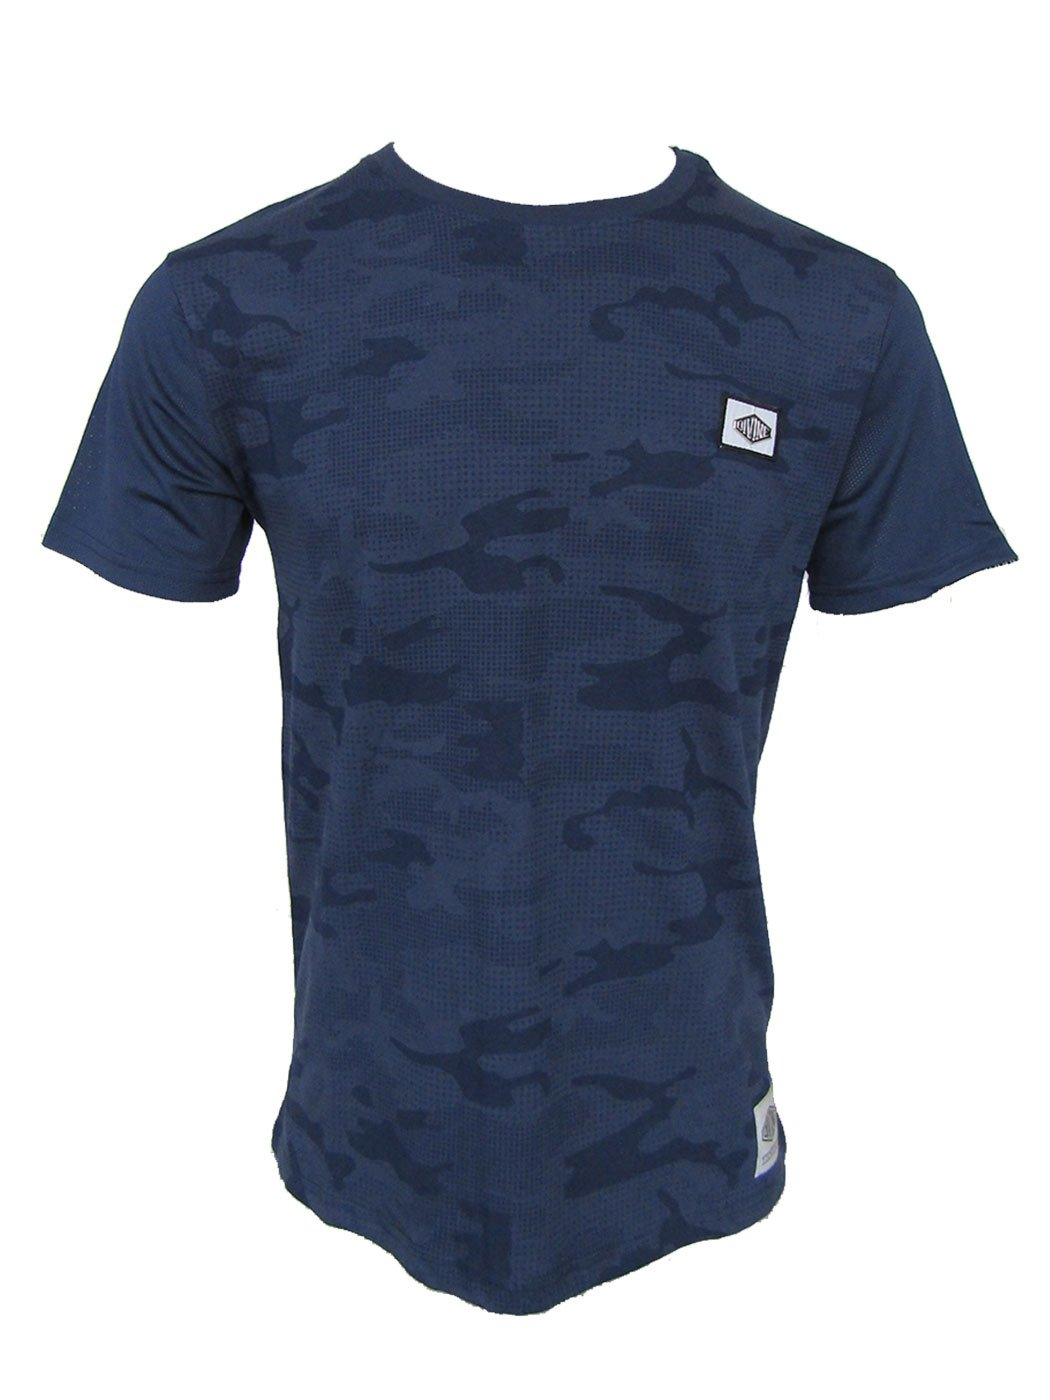 Ghost Navy Tee with Camo Design